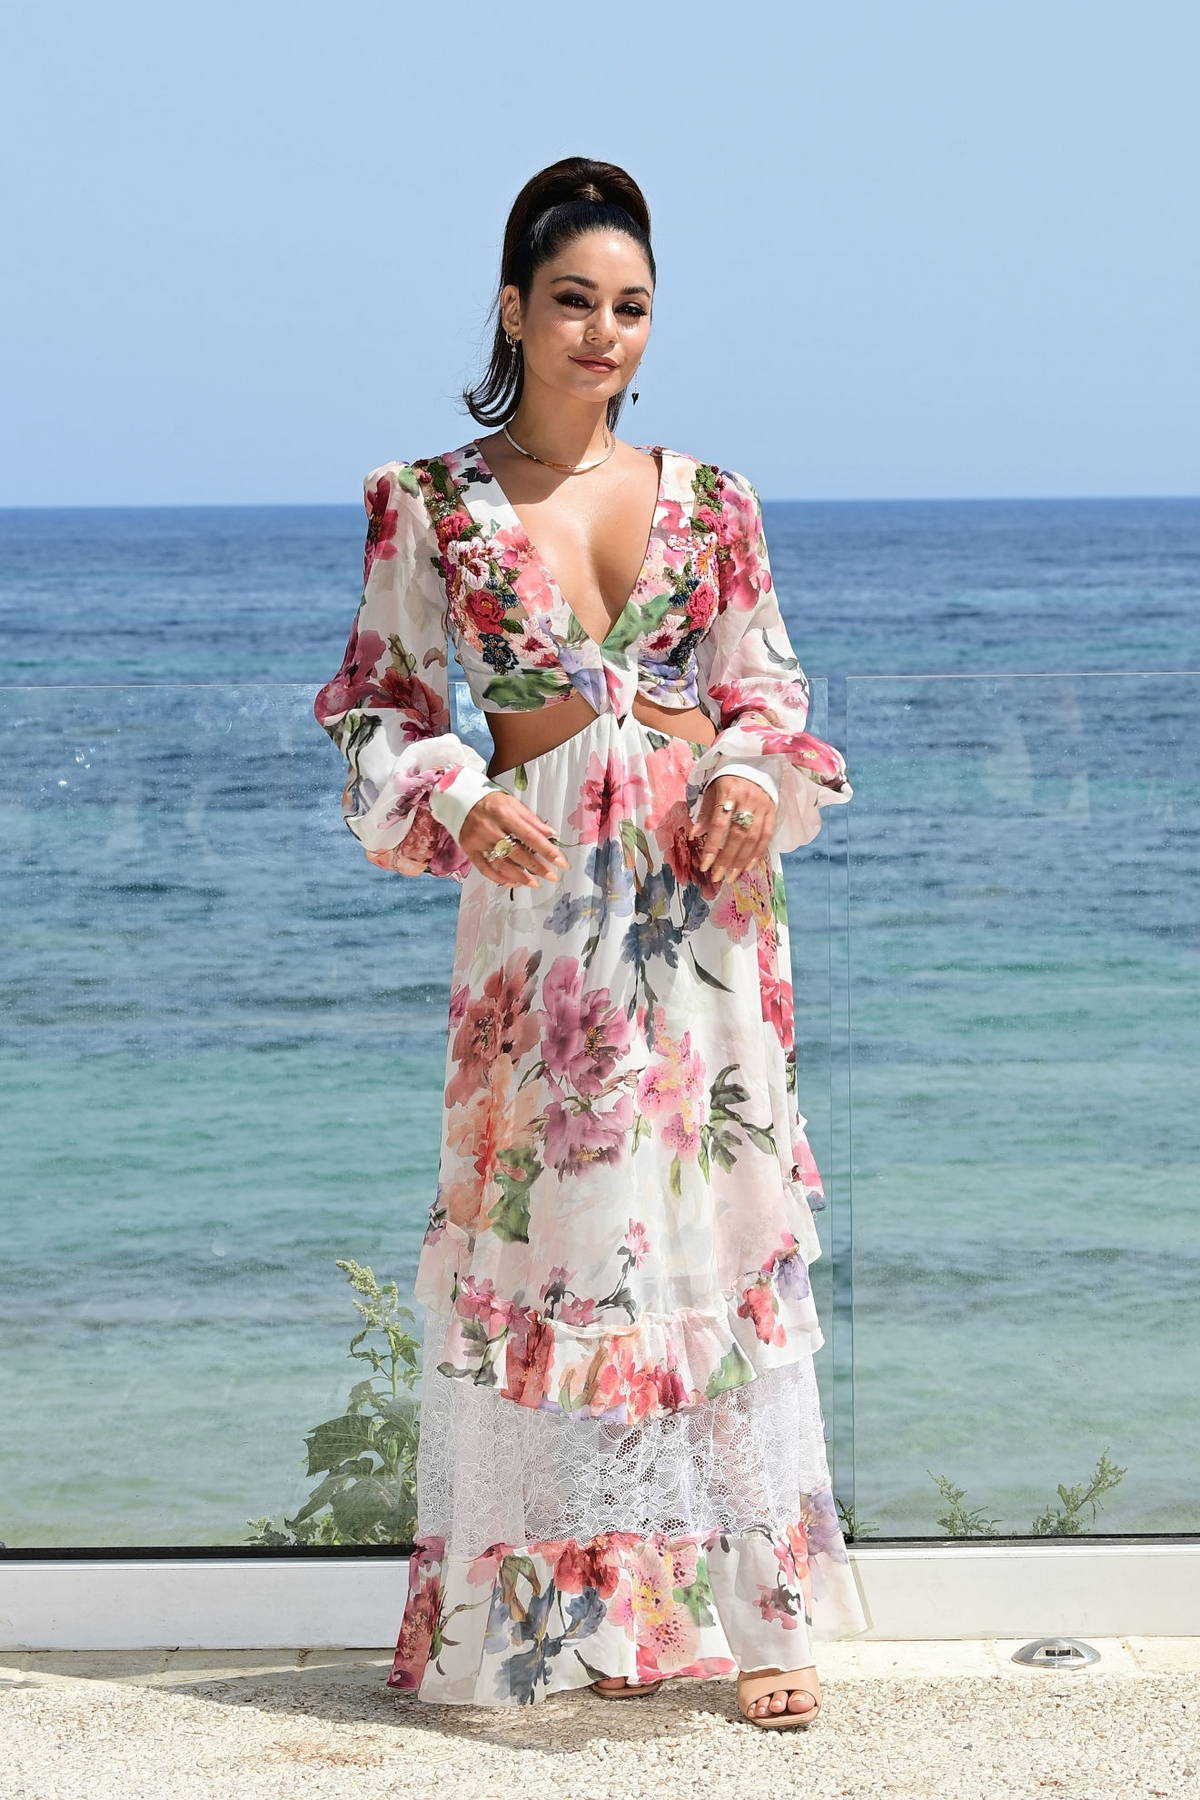 Vanessa Hudgens looks stunning in a floral dress while attending Filming Italy Festival, Day 3 photocall in Santa Margherita di Pula, Italy